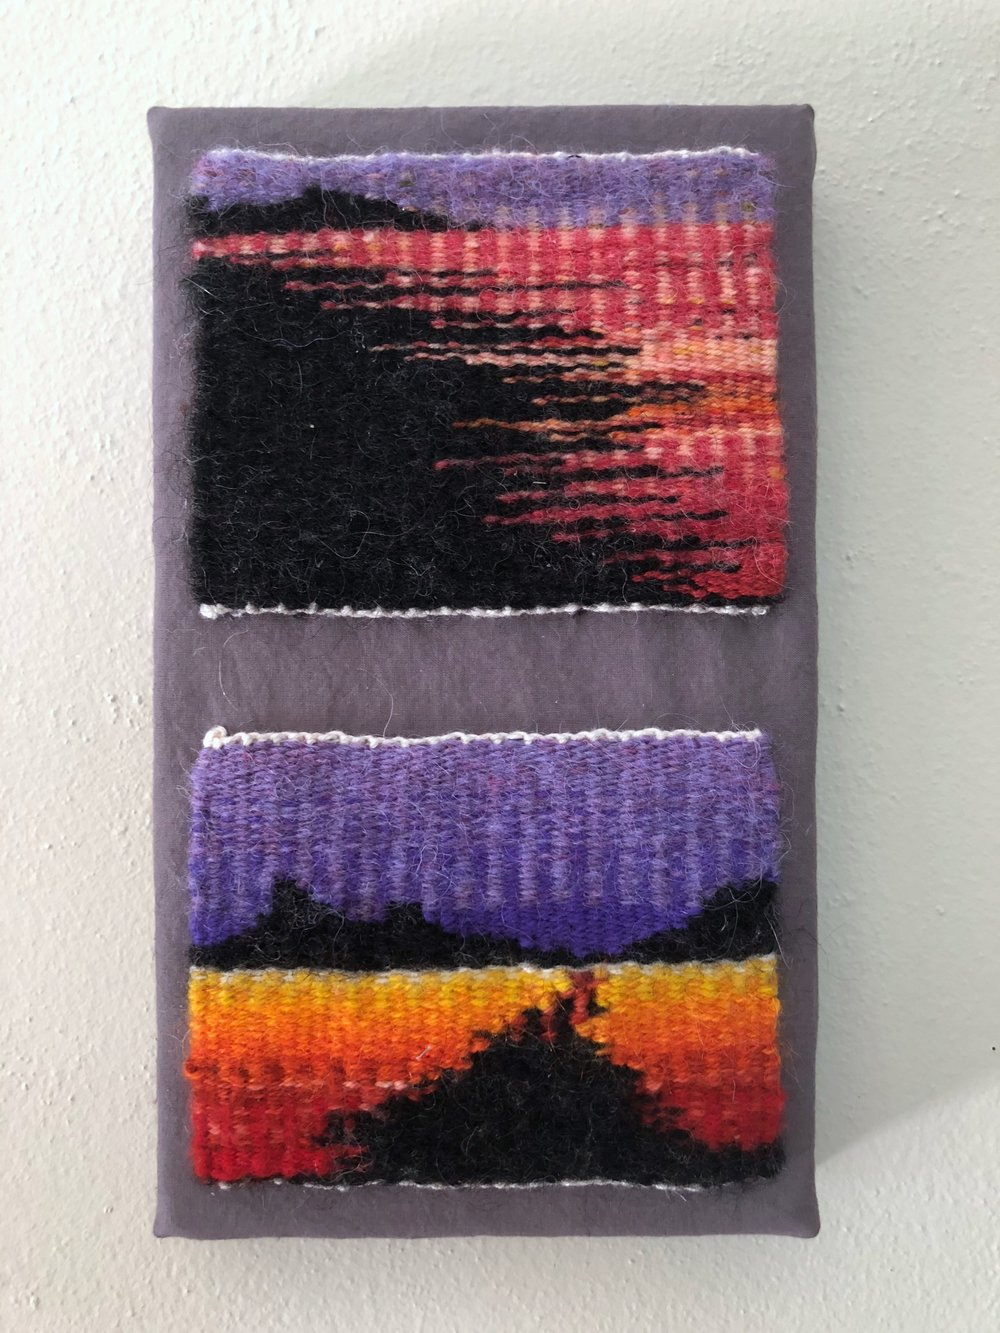 "Desert Hearts I & II, 2018. Linen, wool, and cotton. 7"" x 15"". Featured in  Warp and Weft: An Exhibit of Tapestry  at Webster Arts in 2018."